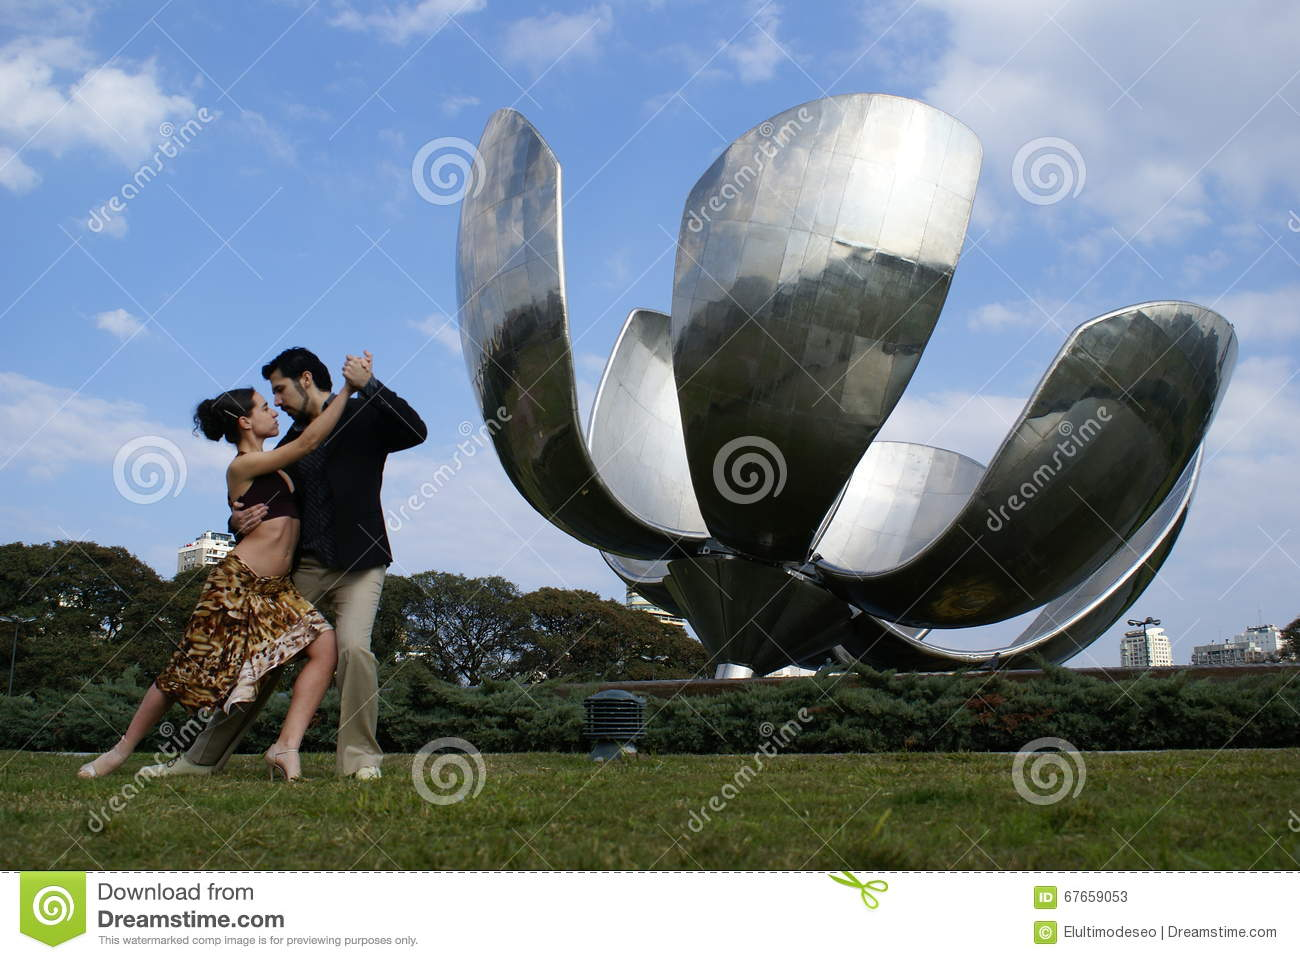 Floralis Generica of Buenos Aires and Tango